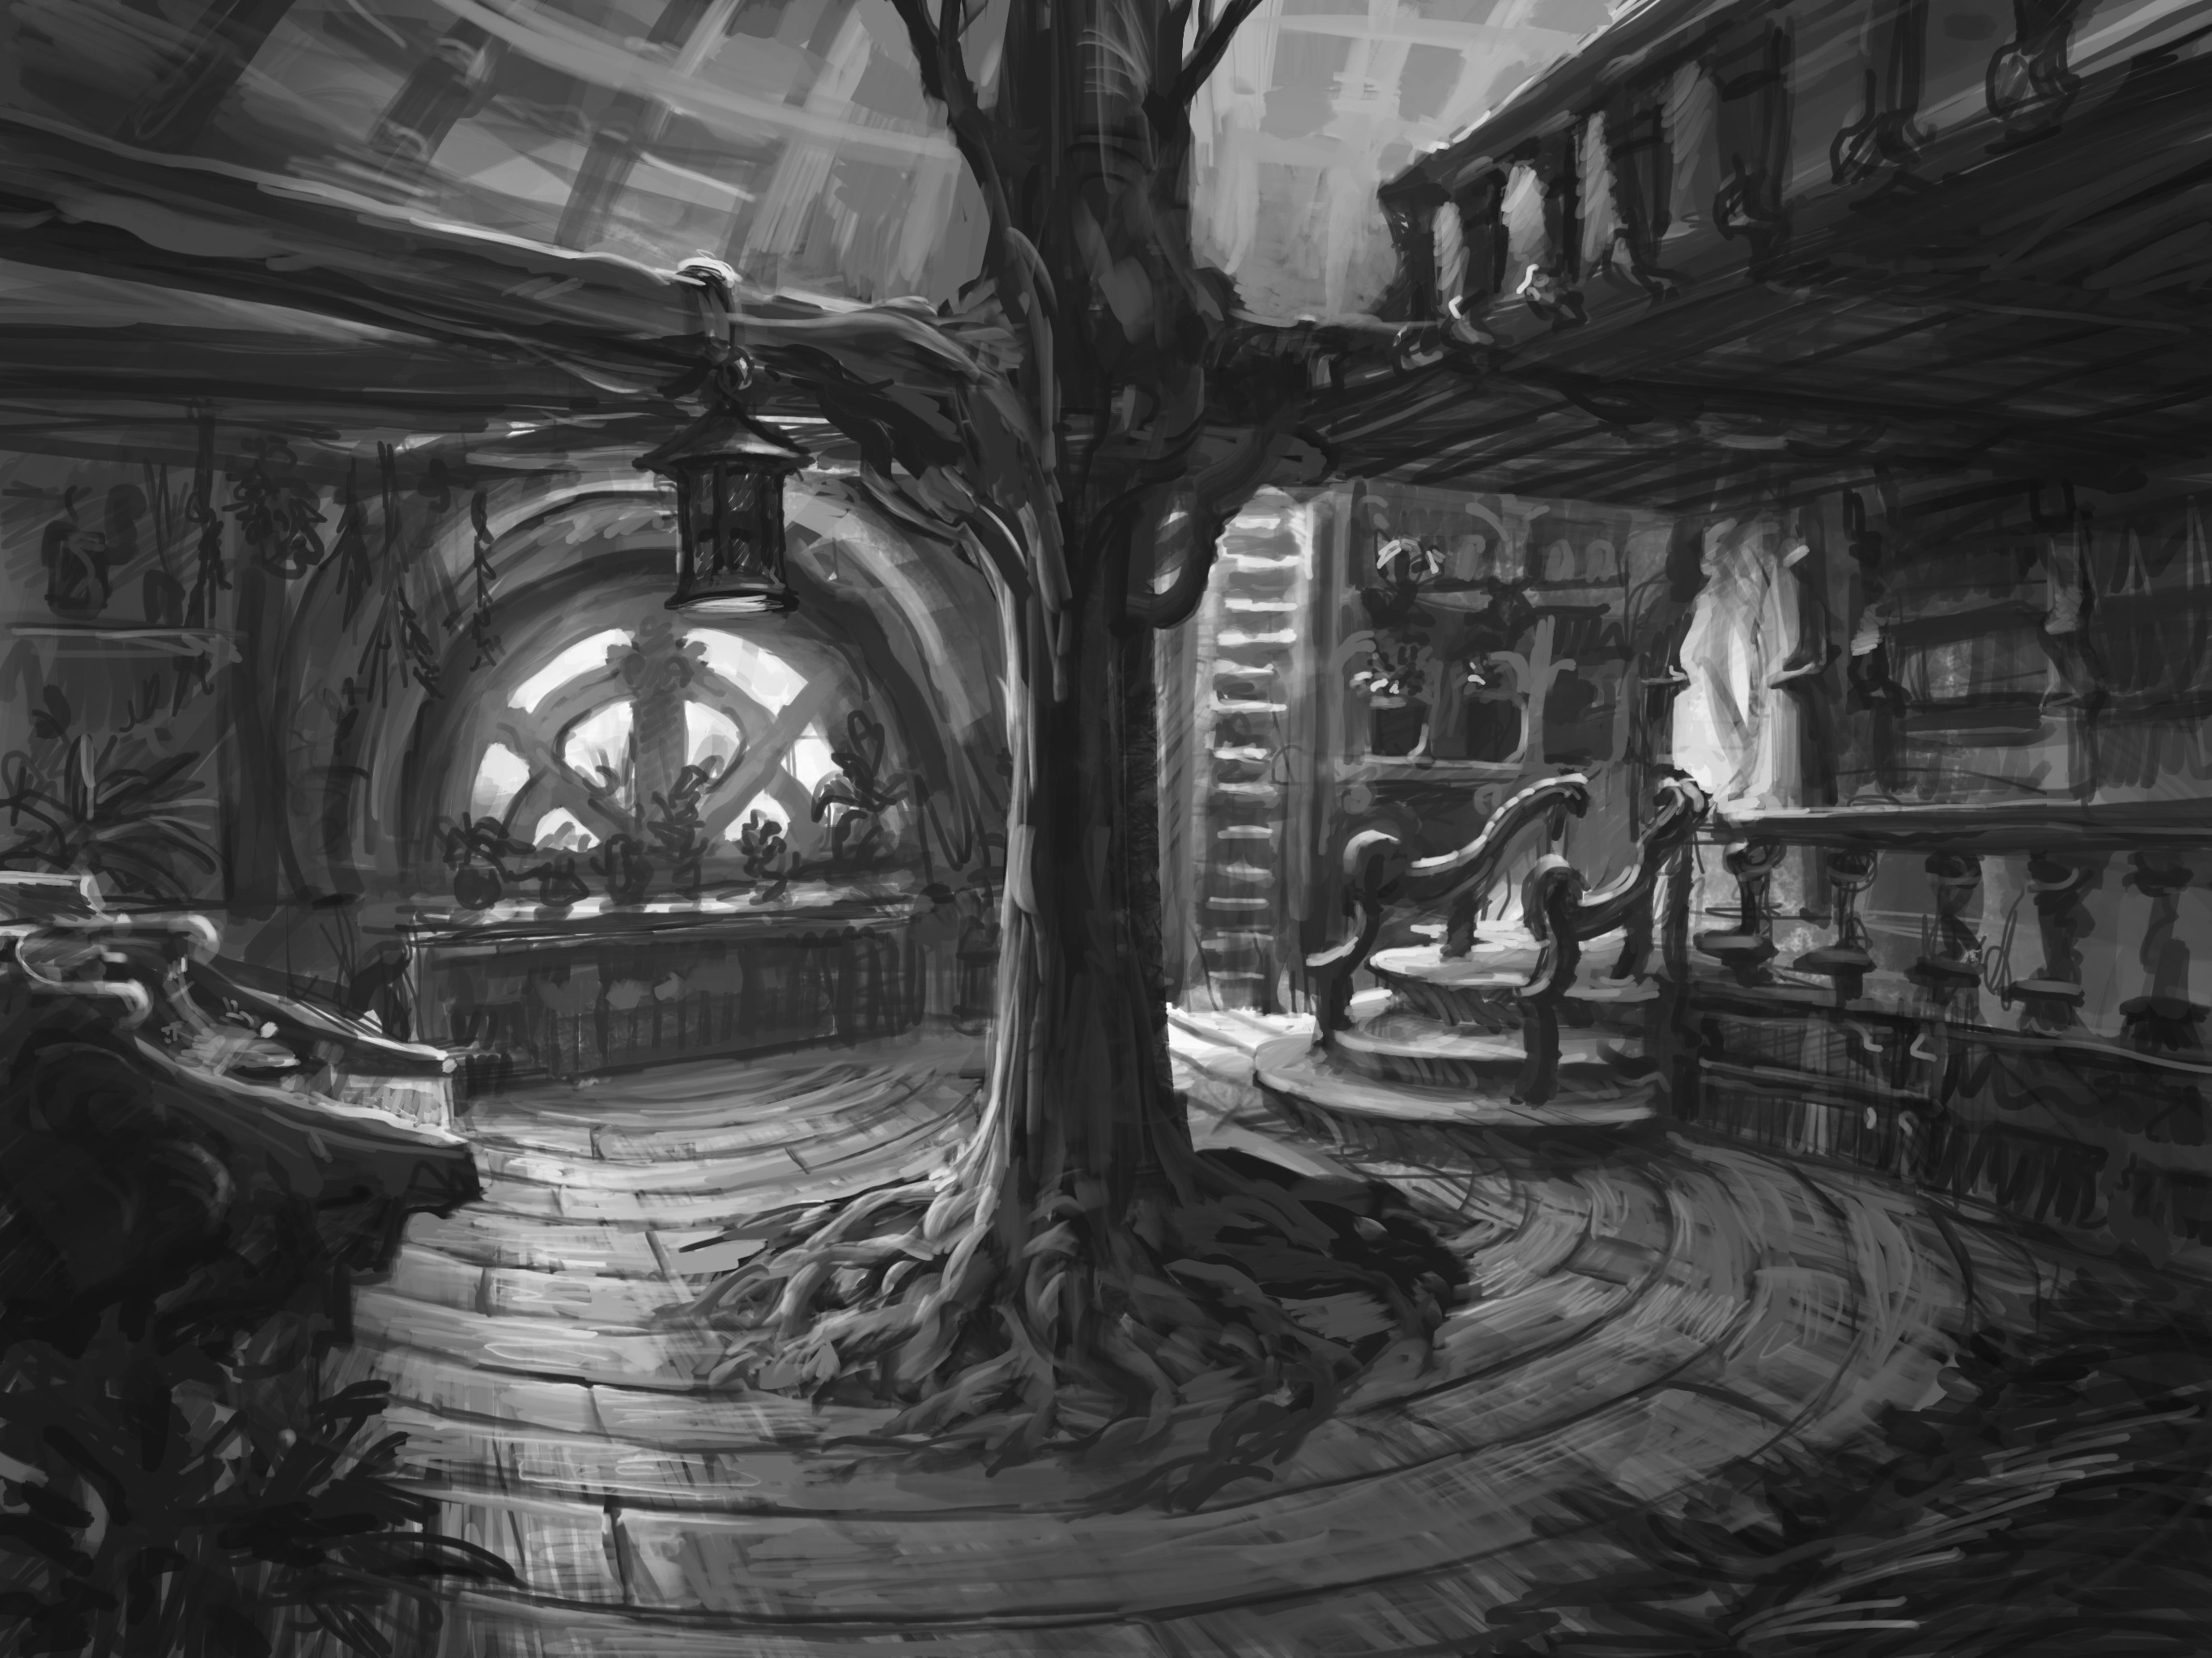 Interior Sketch - Done before doing all the rest. This sketch sparked the idea for the building.